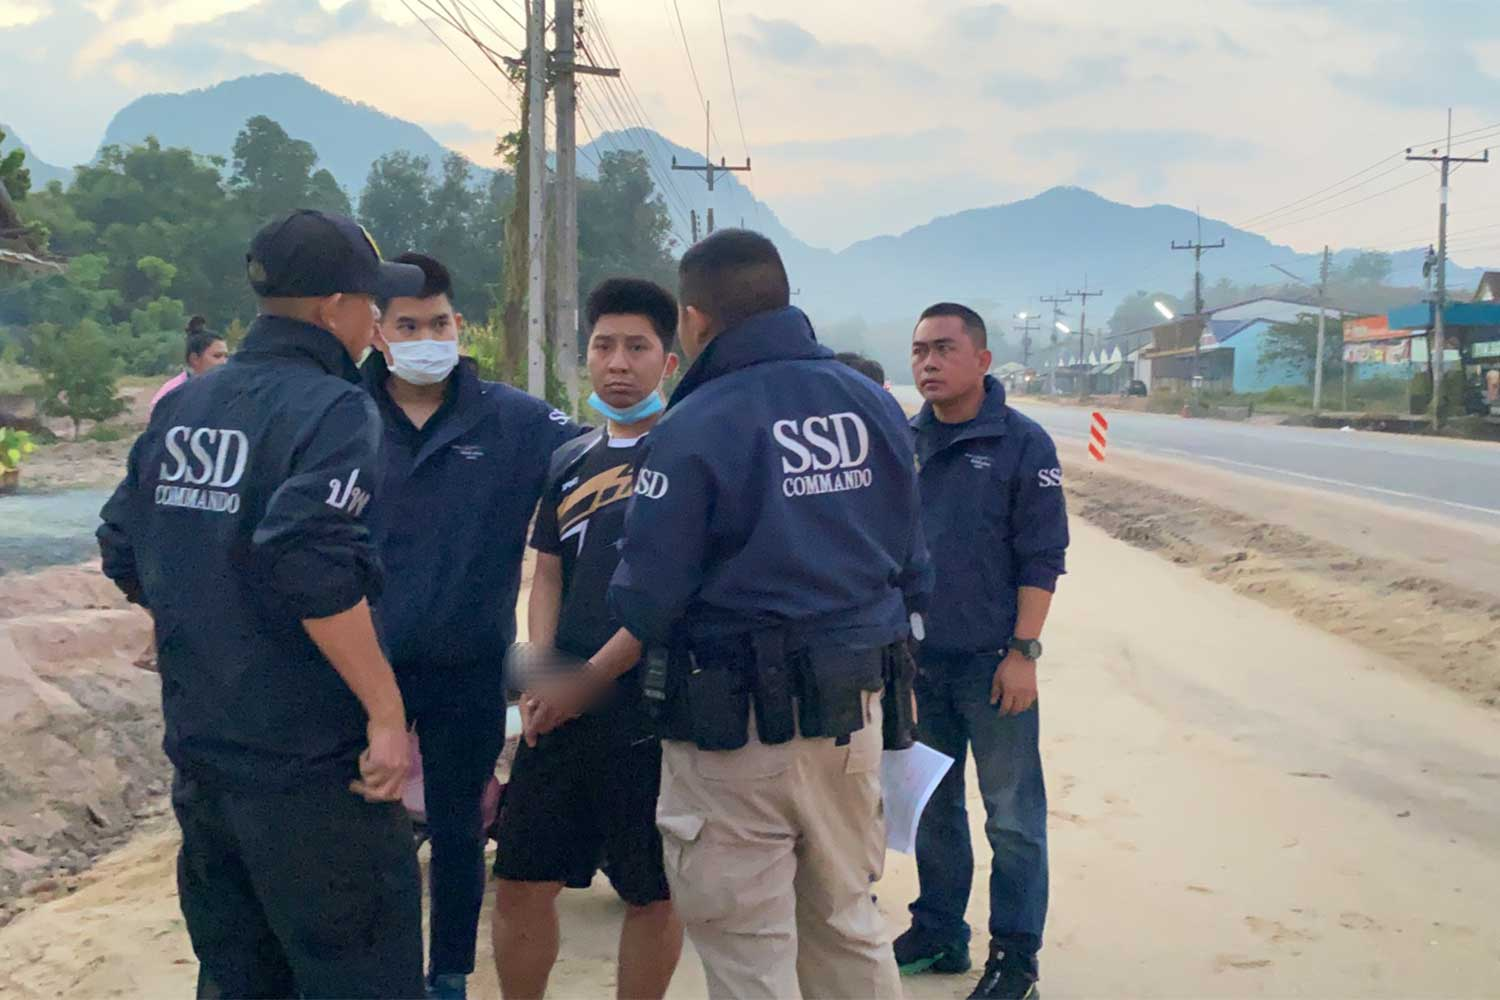 Jakkrawut Yimphat, 26, a national park employee, face mask under his chin, is taken from his house in Surat Thani by police commandos. He is charged with fooling a 16-year-old girl to pose nude for videos, and then extorting her. (Photo supplied/Wassayos Ngamkham)